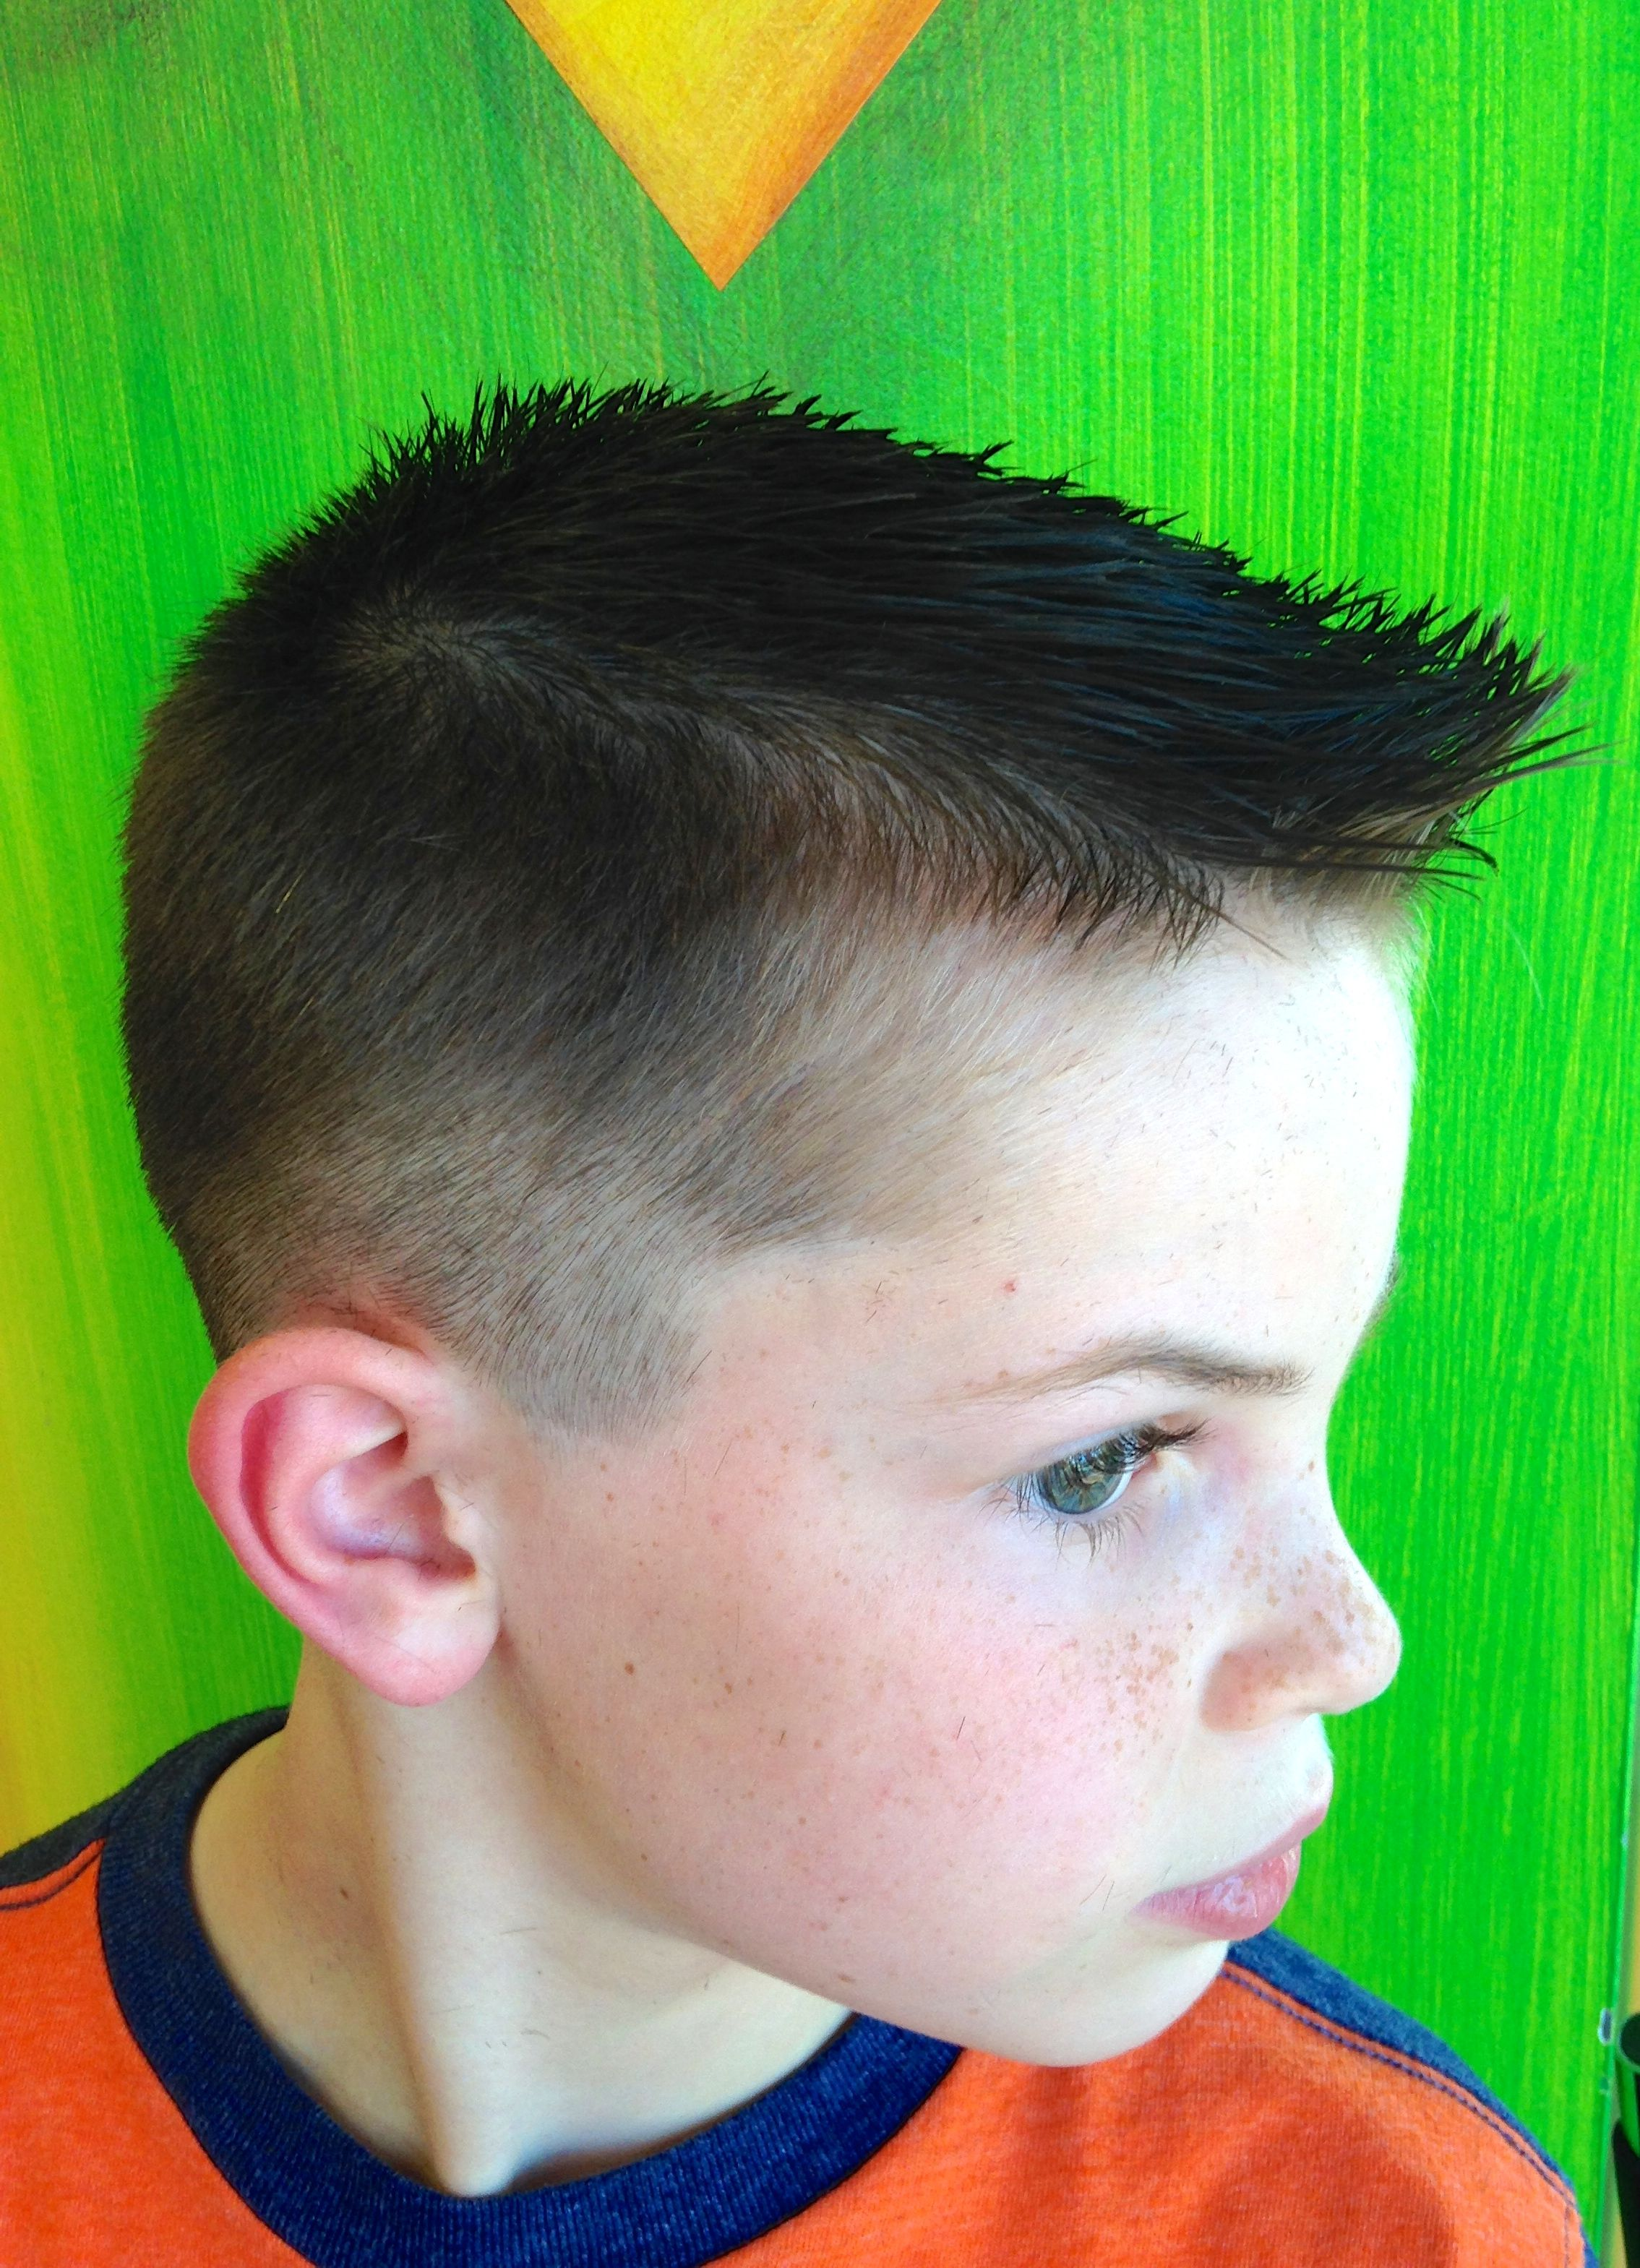 boy haircuts fade drew taper fade kidsnips kidsnips haircuts for 1804